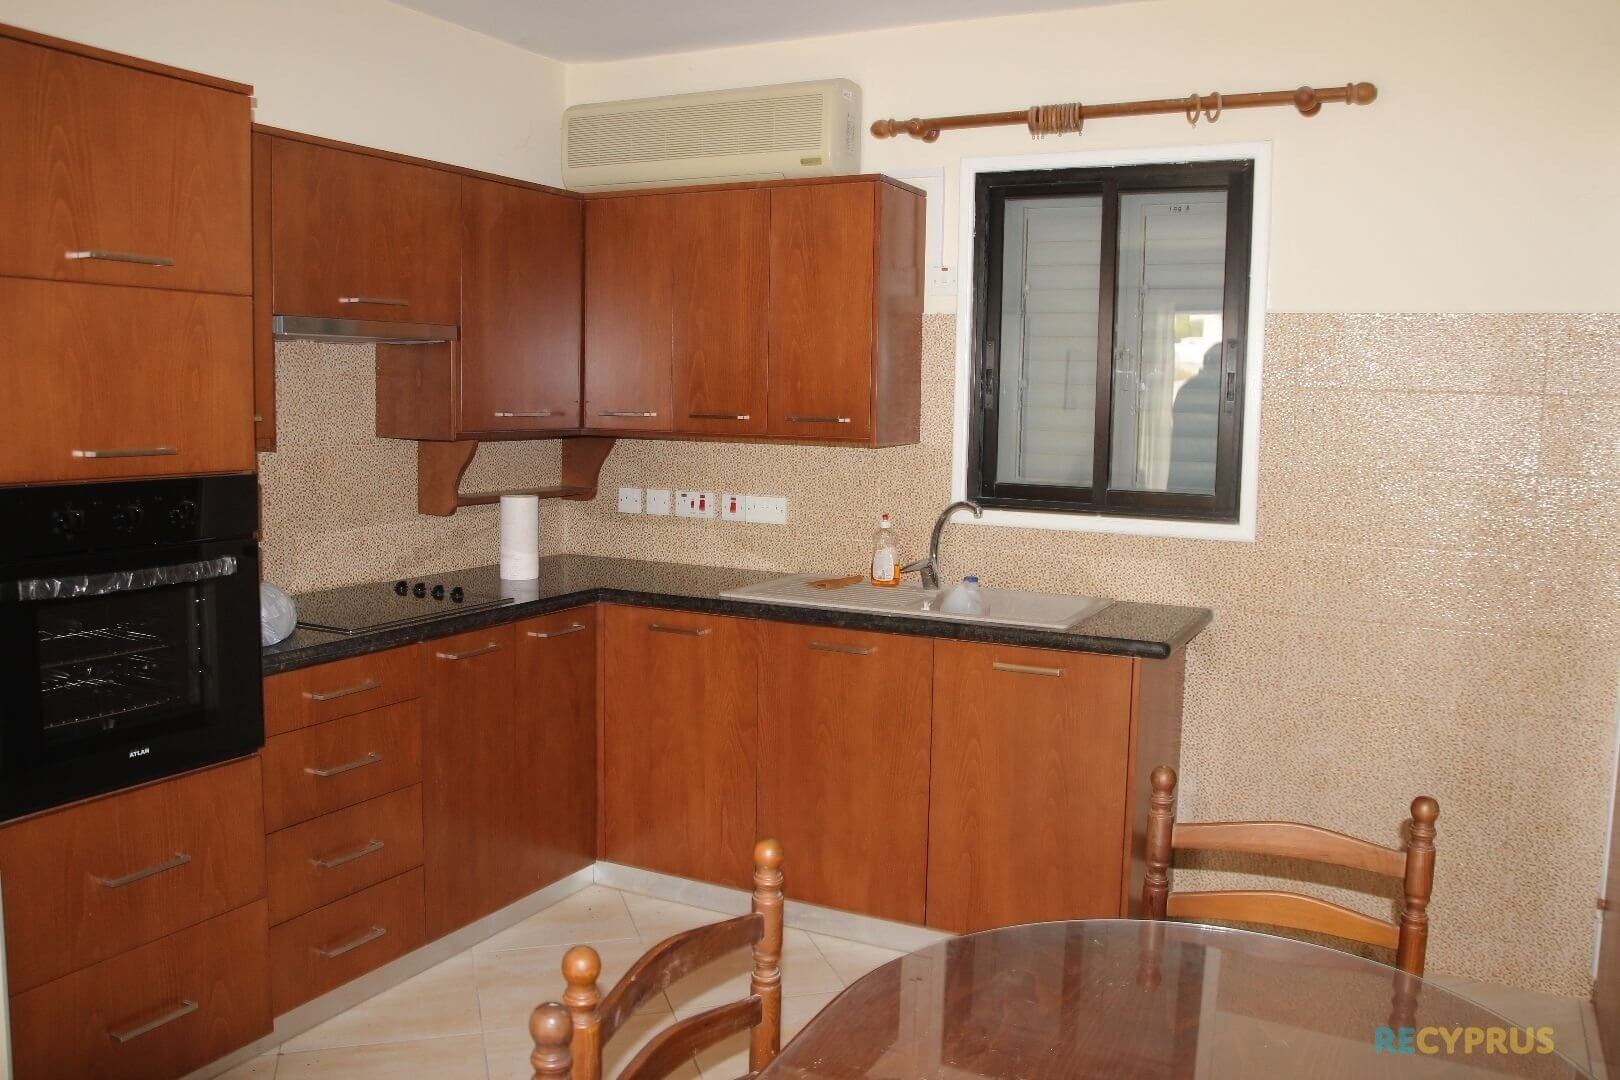 Apartment for sale Kapparis Famagusta Cyprus 2 3559